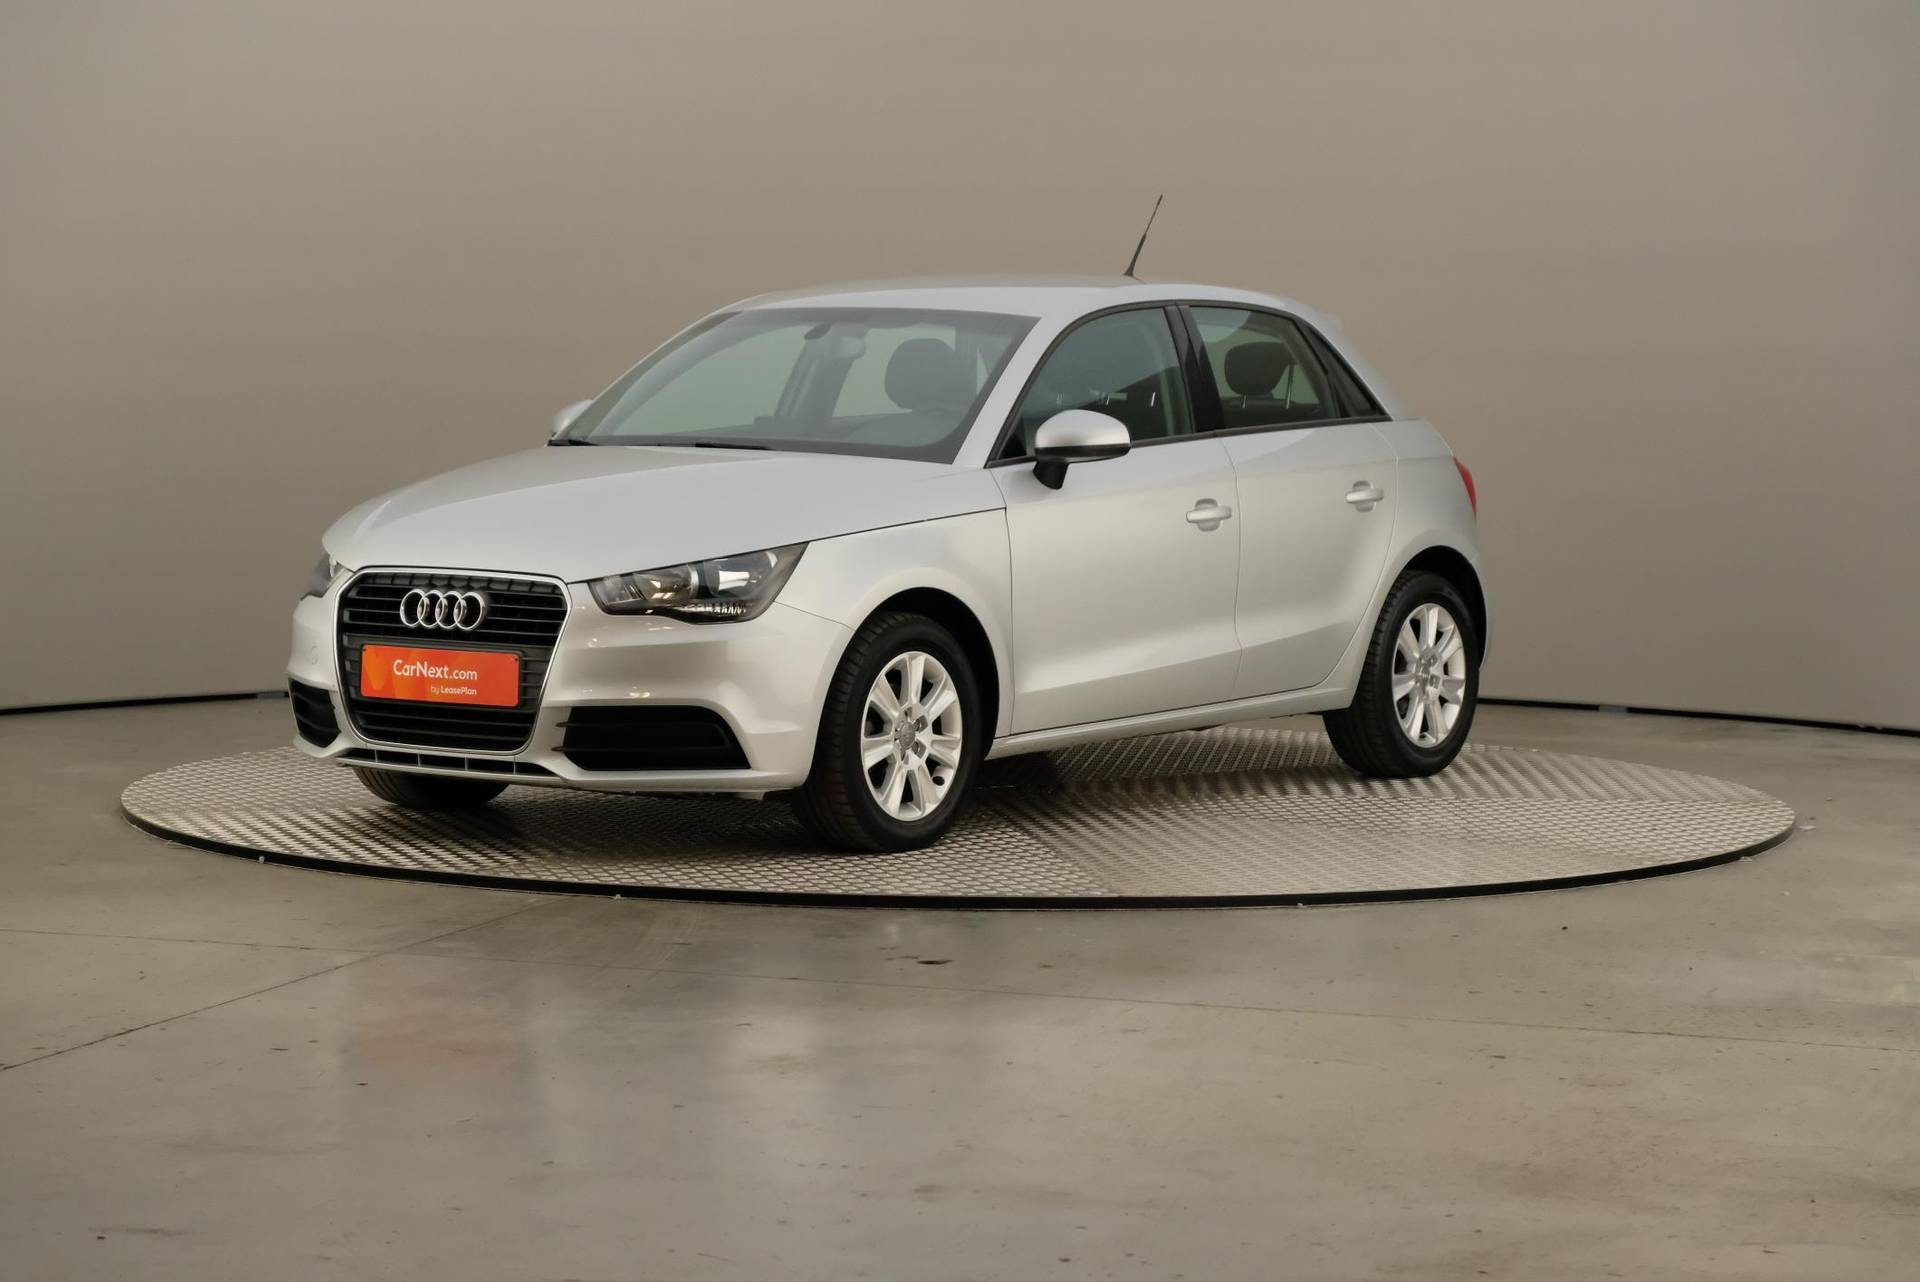 Audi A1 1.6 TDI Sportback, Attraction S&S PDC BT, 360-image35